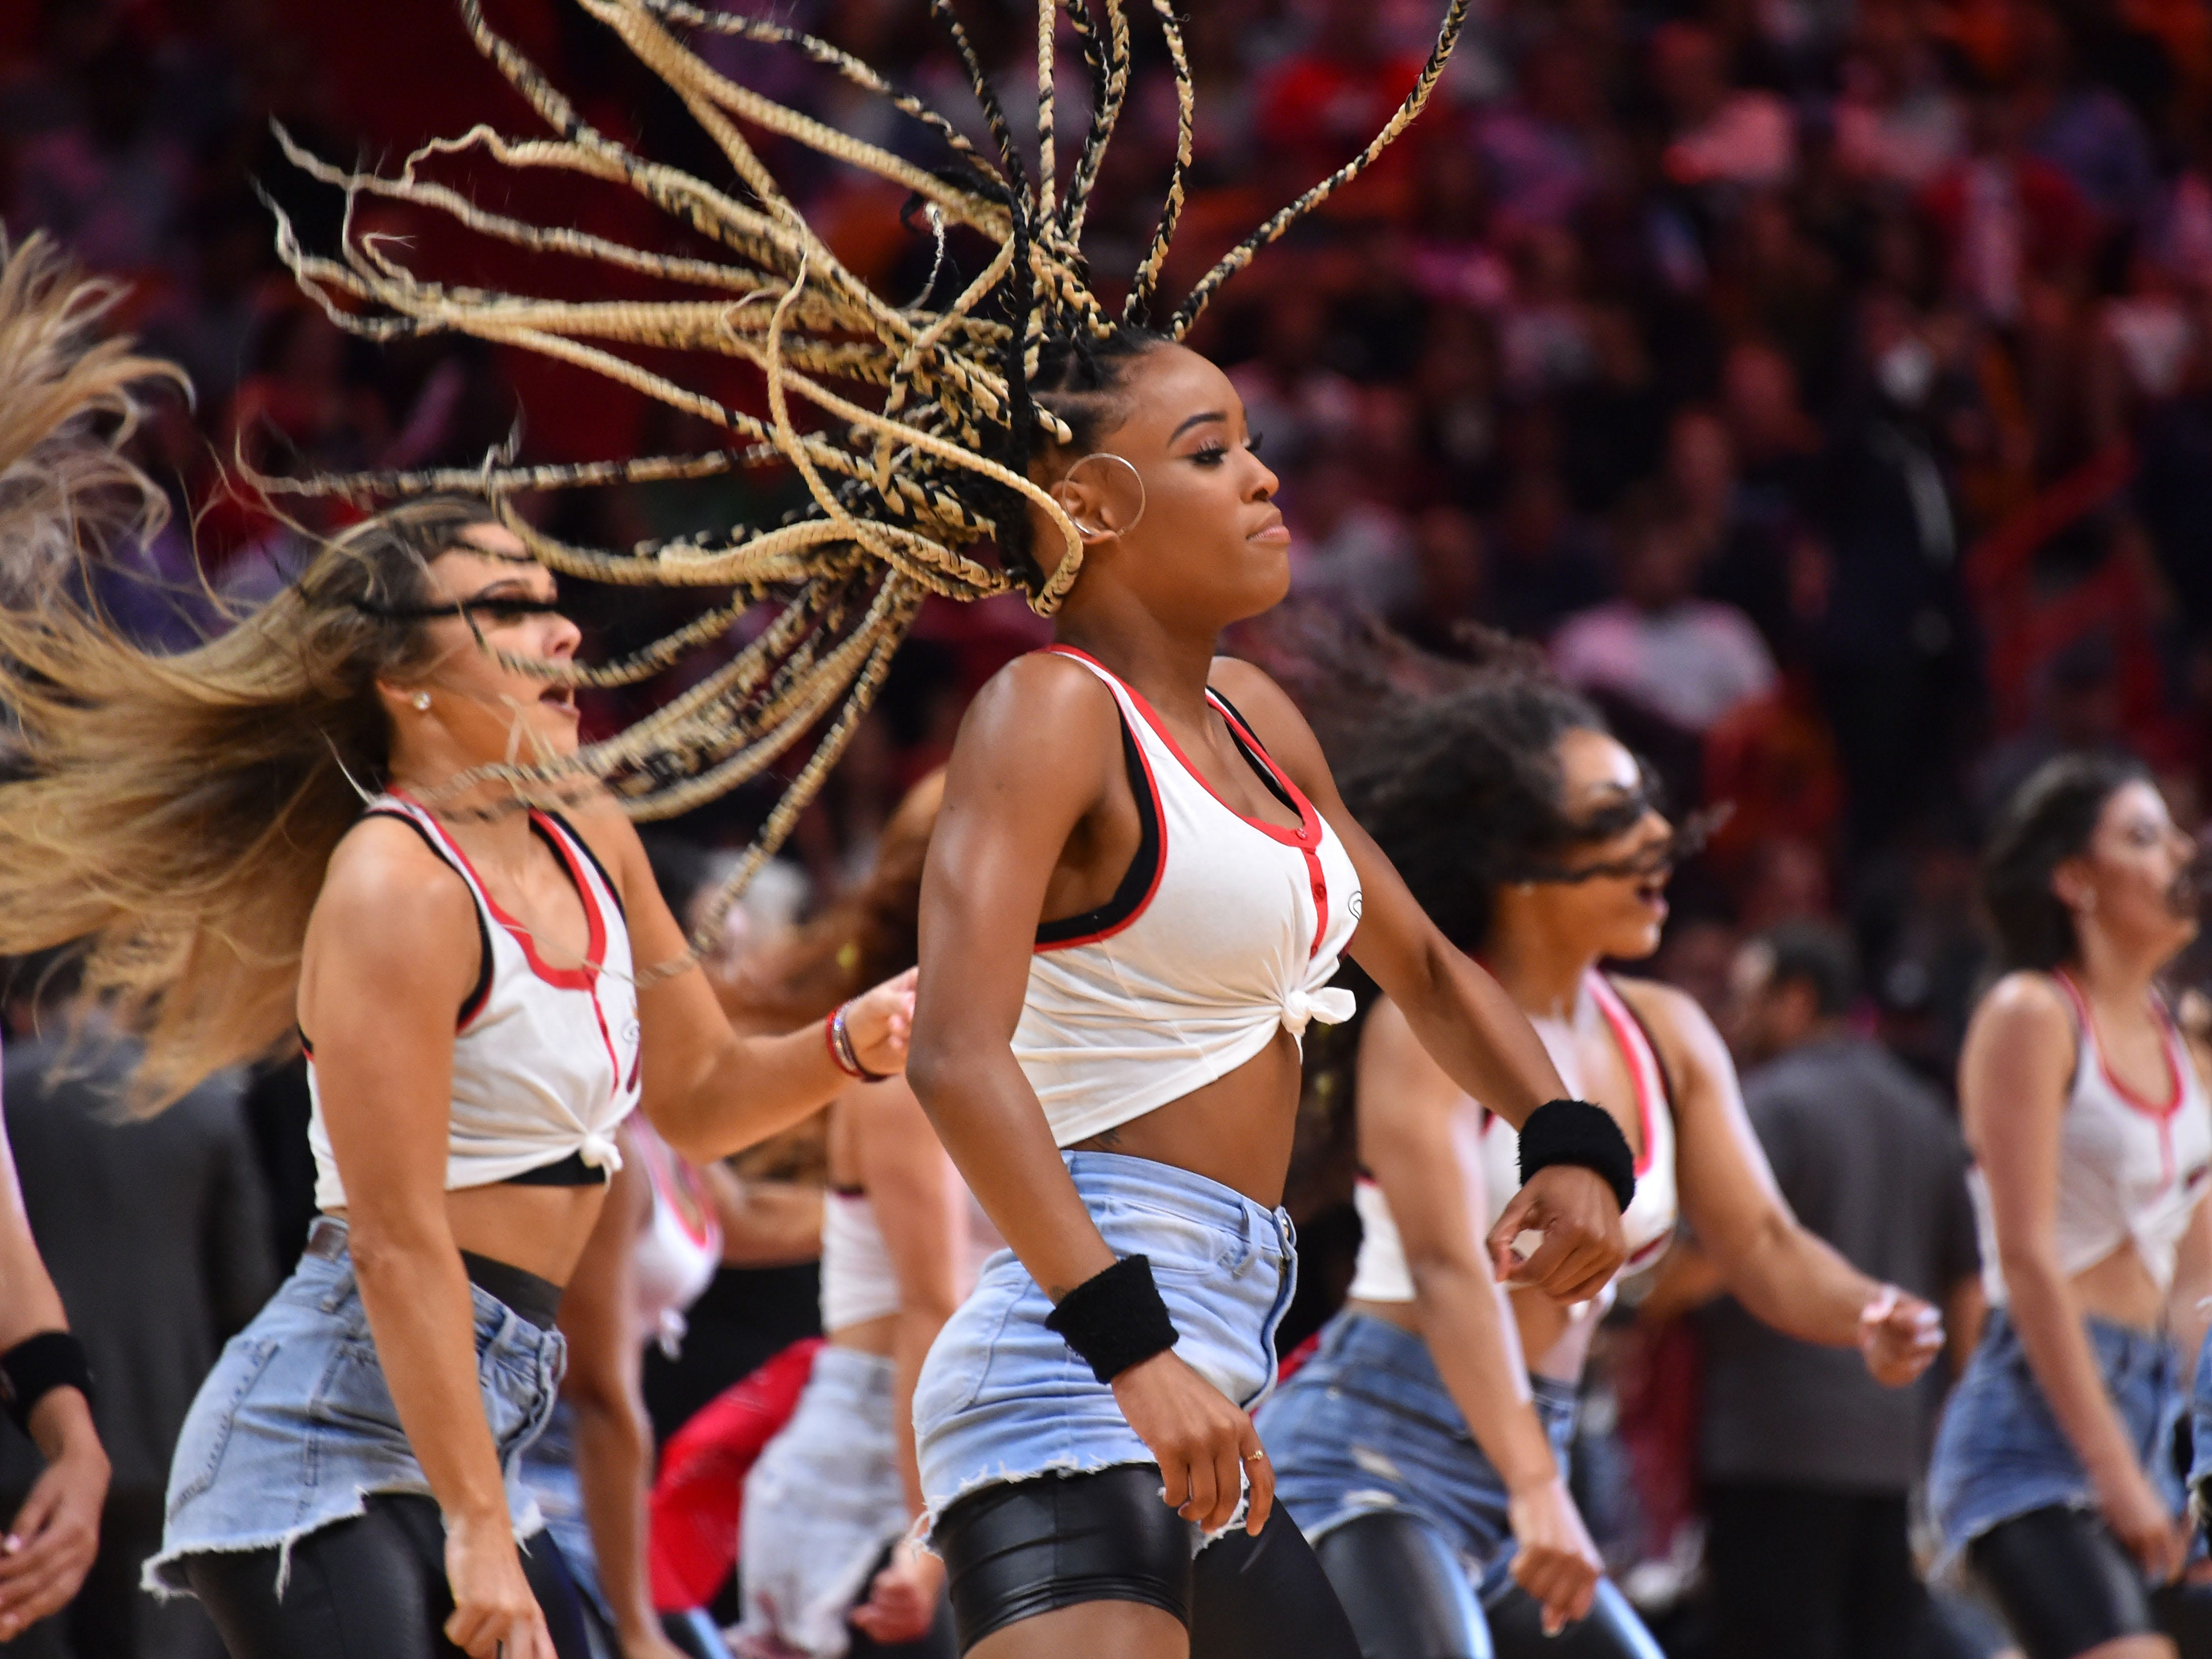 April 3, 2019: Miami Heat cheerleaders dance during a break in the action at American Airlines Arena.